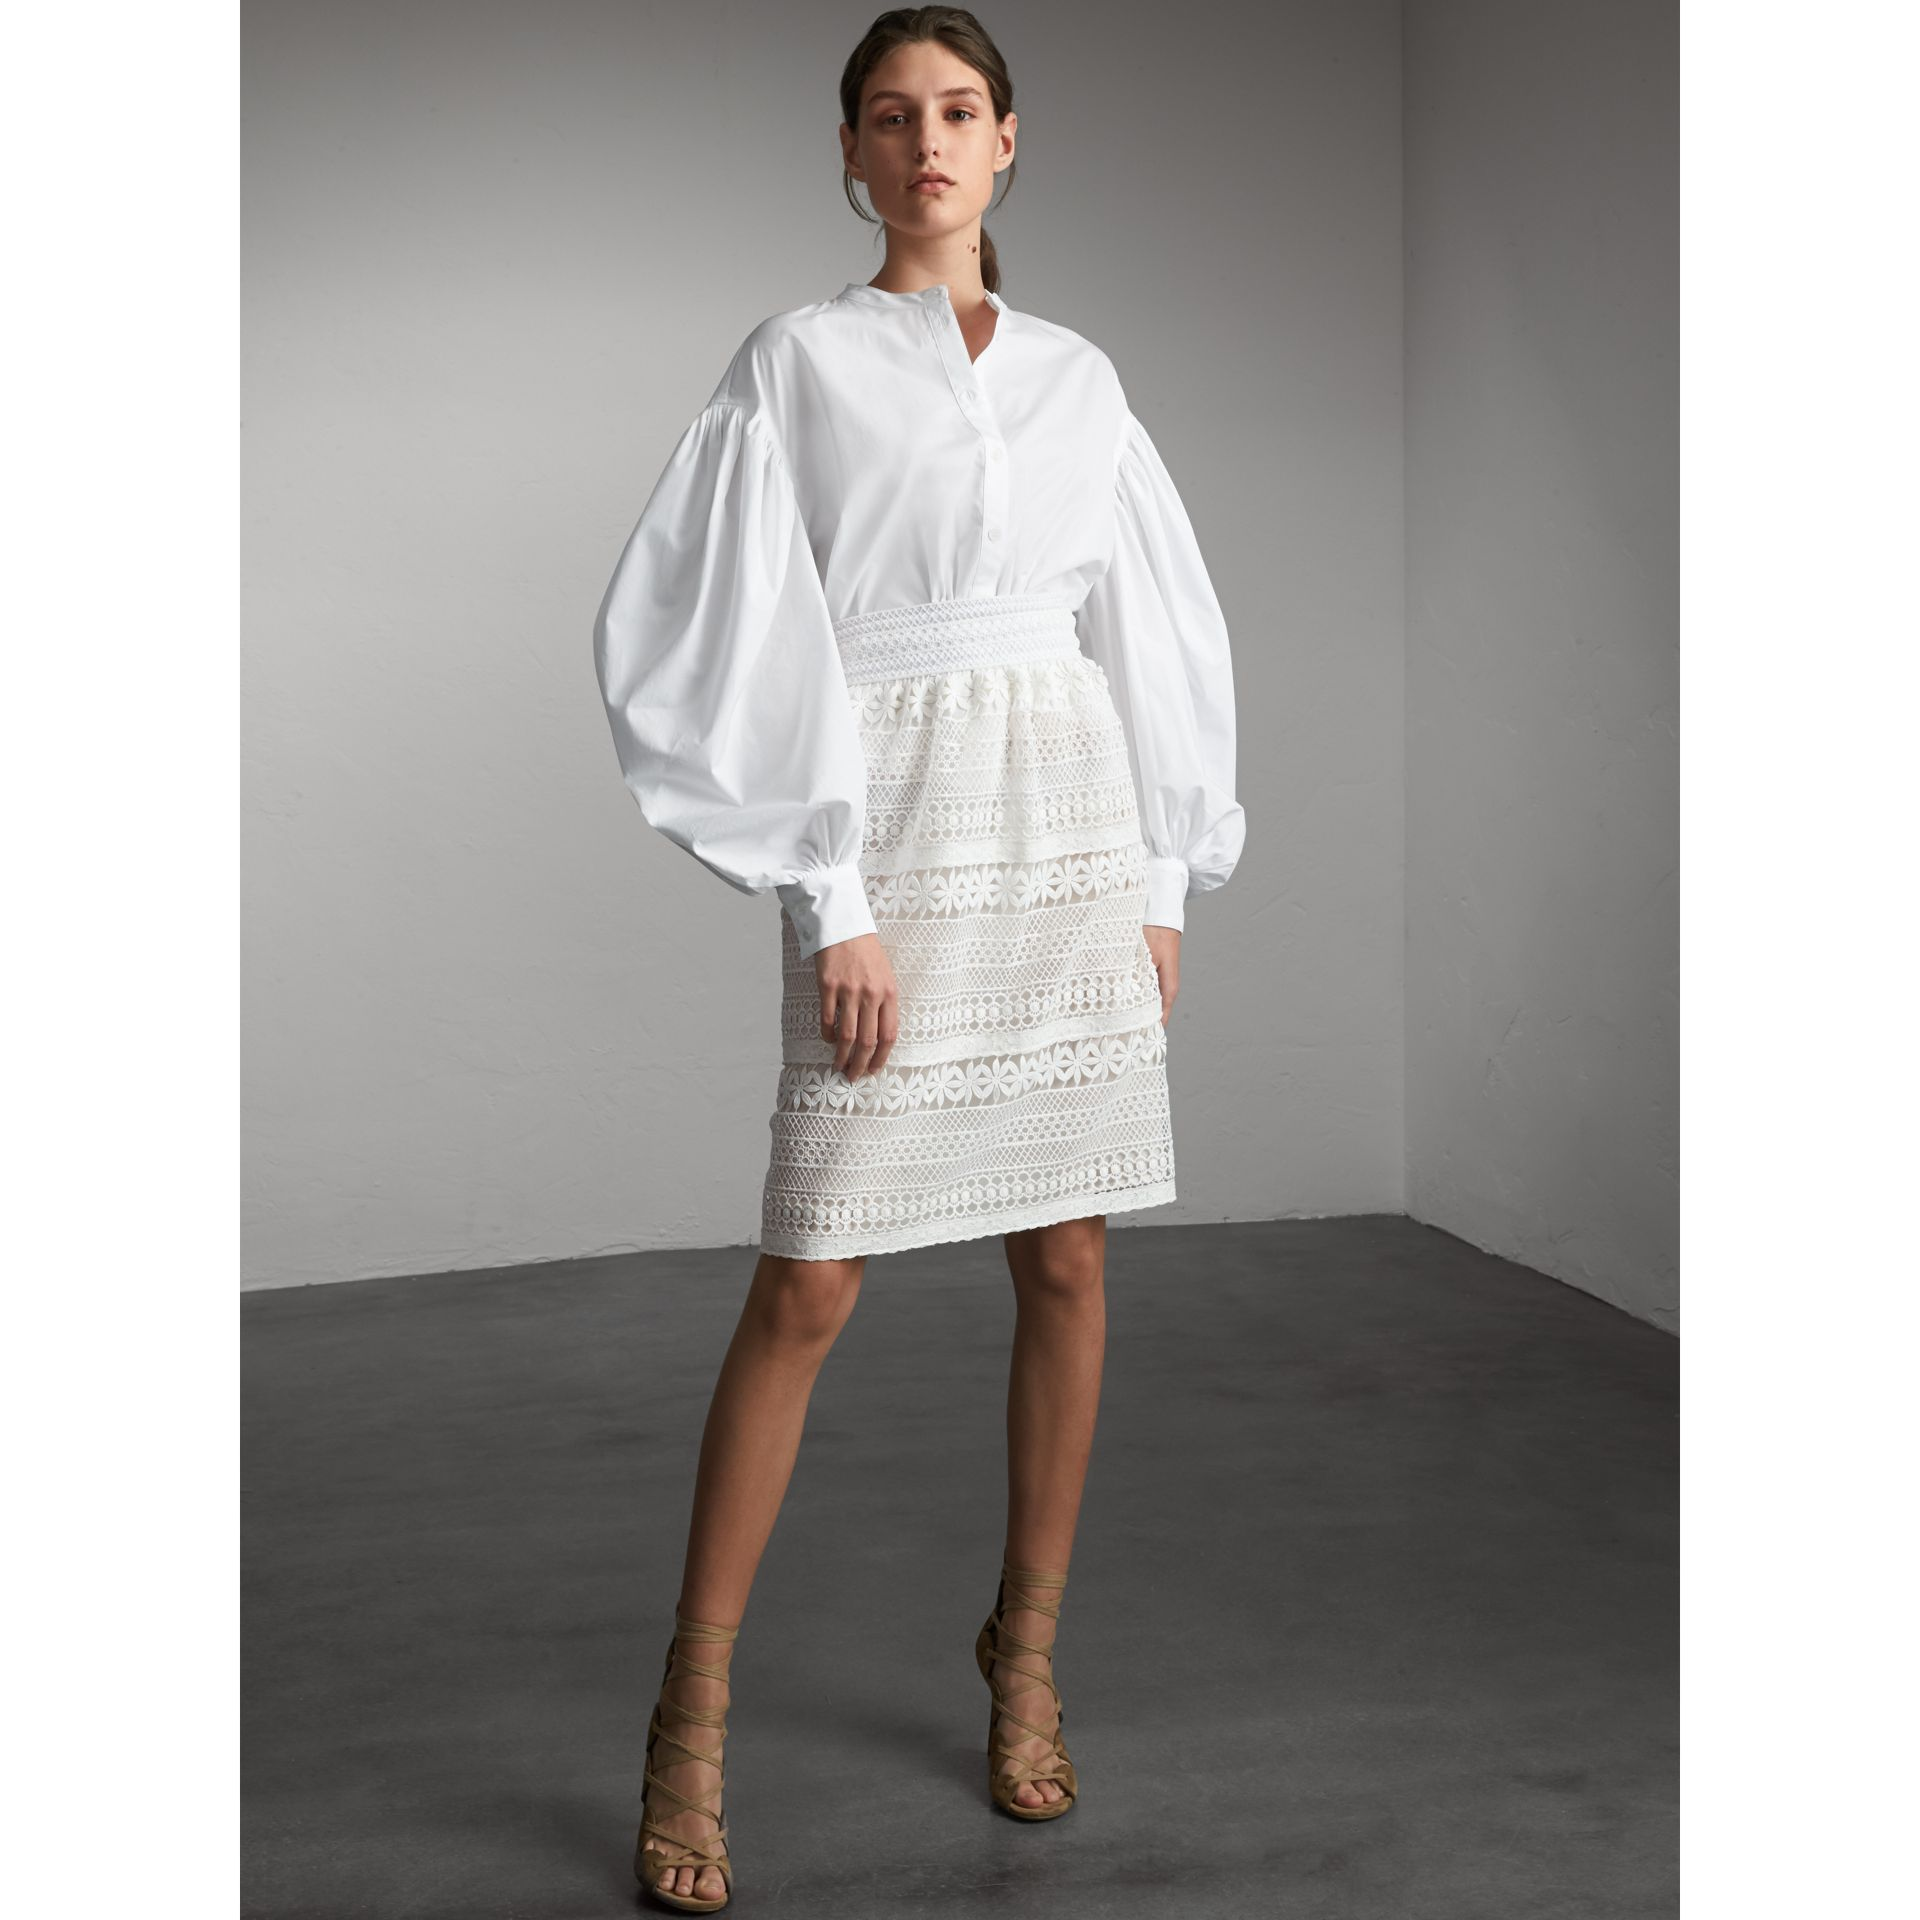 Macramé Lace Skirt in White - Women | Burberry - gallery image 1